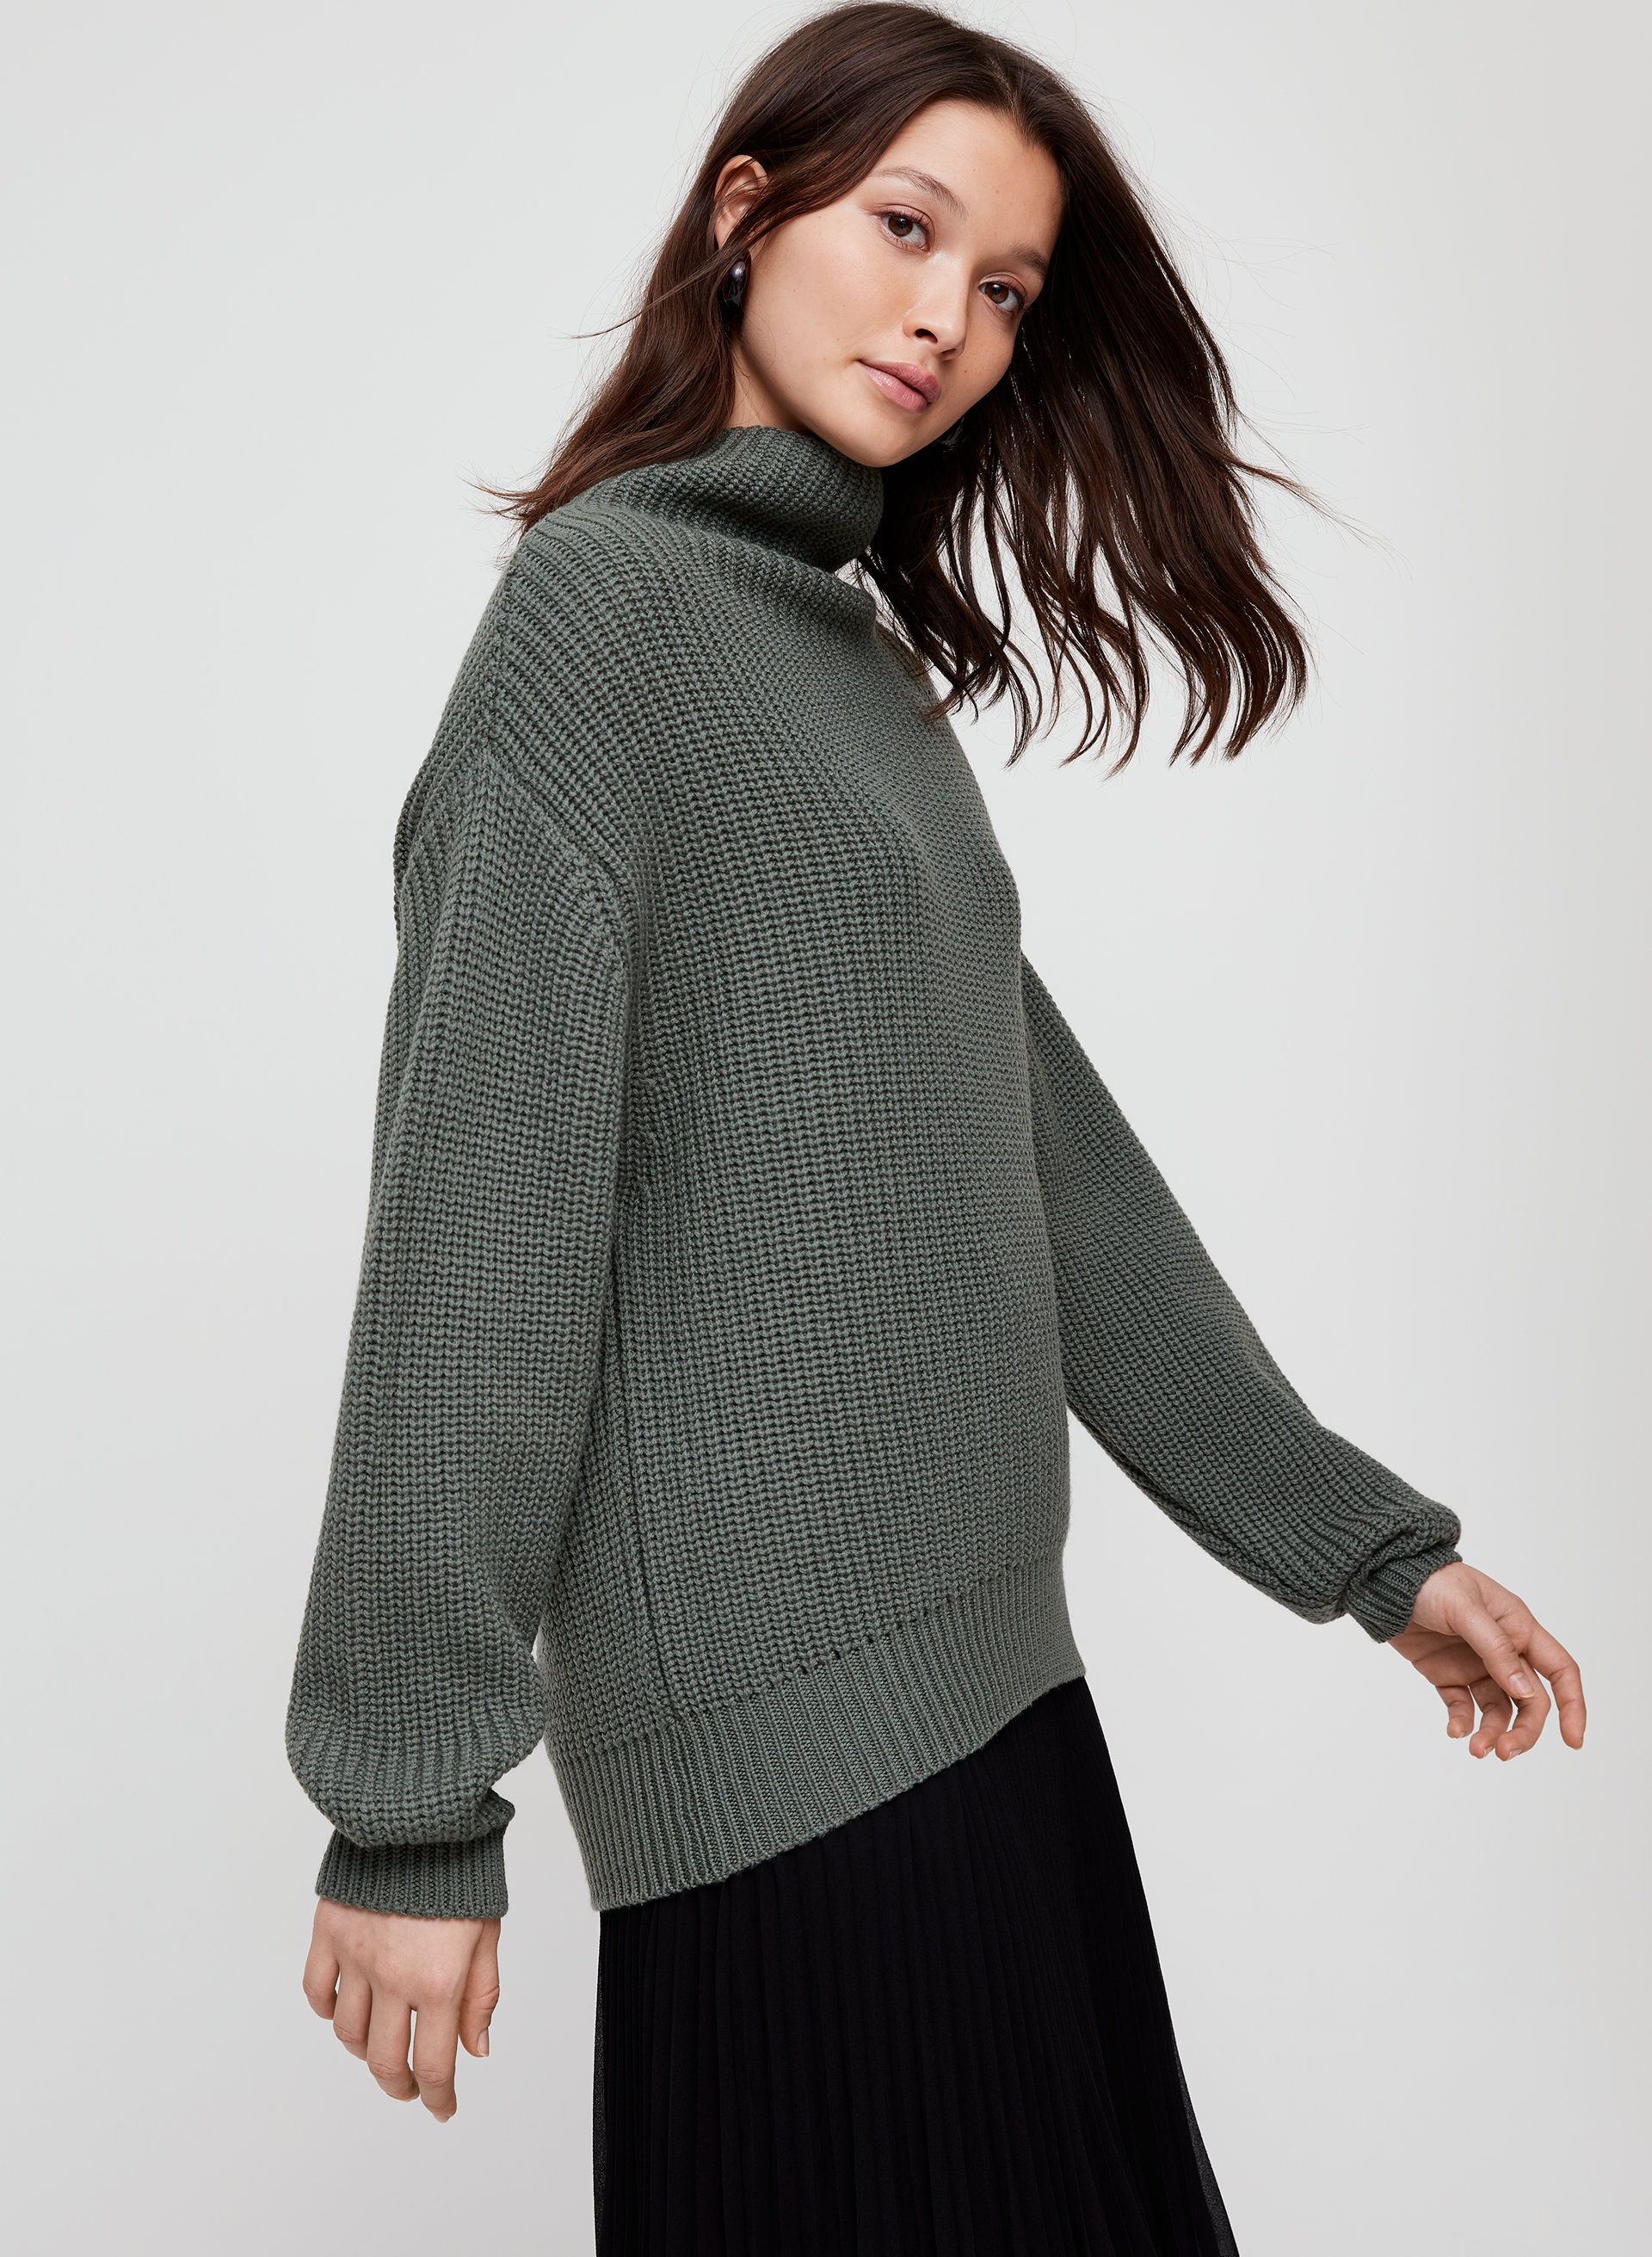 543dab91878 montpellier sweater Merino-wool turtleneck sweater